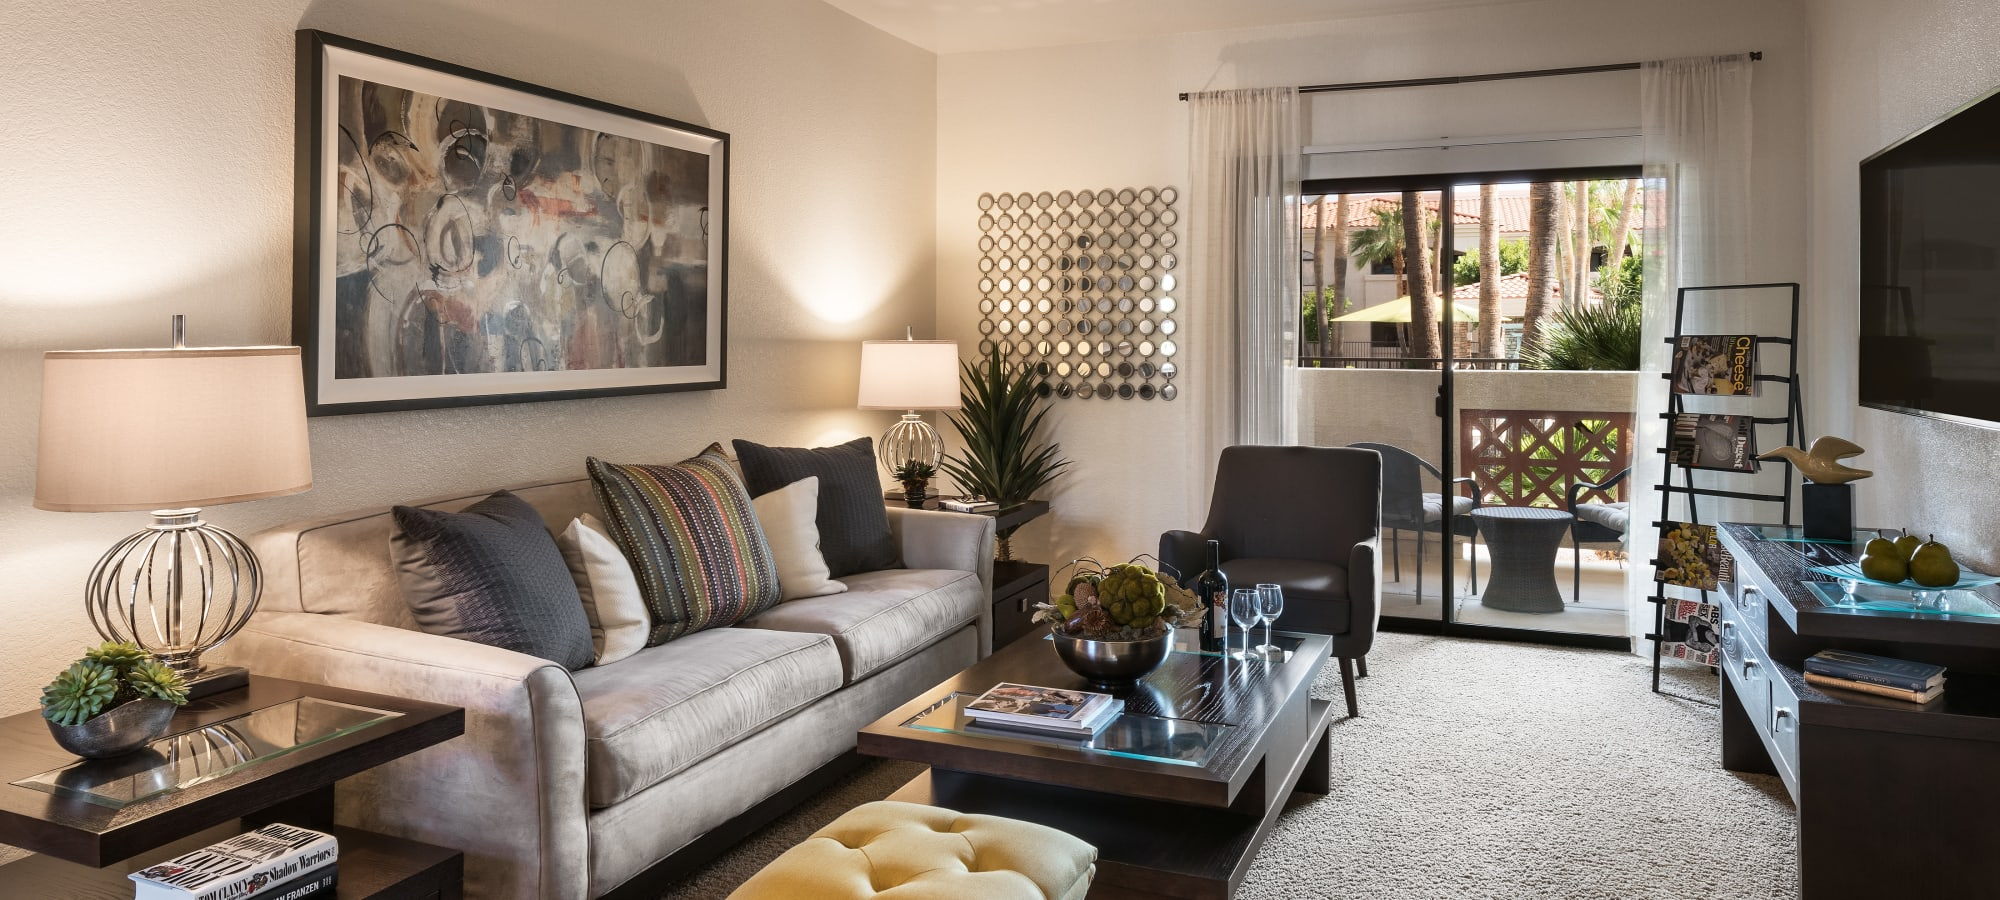 Luxury living room at San Prado in Glendale, Arizona